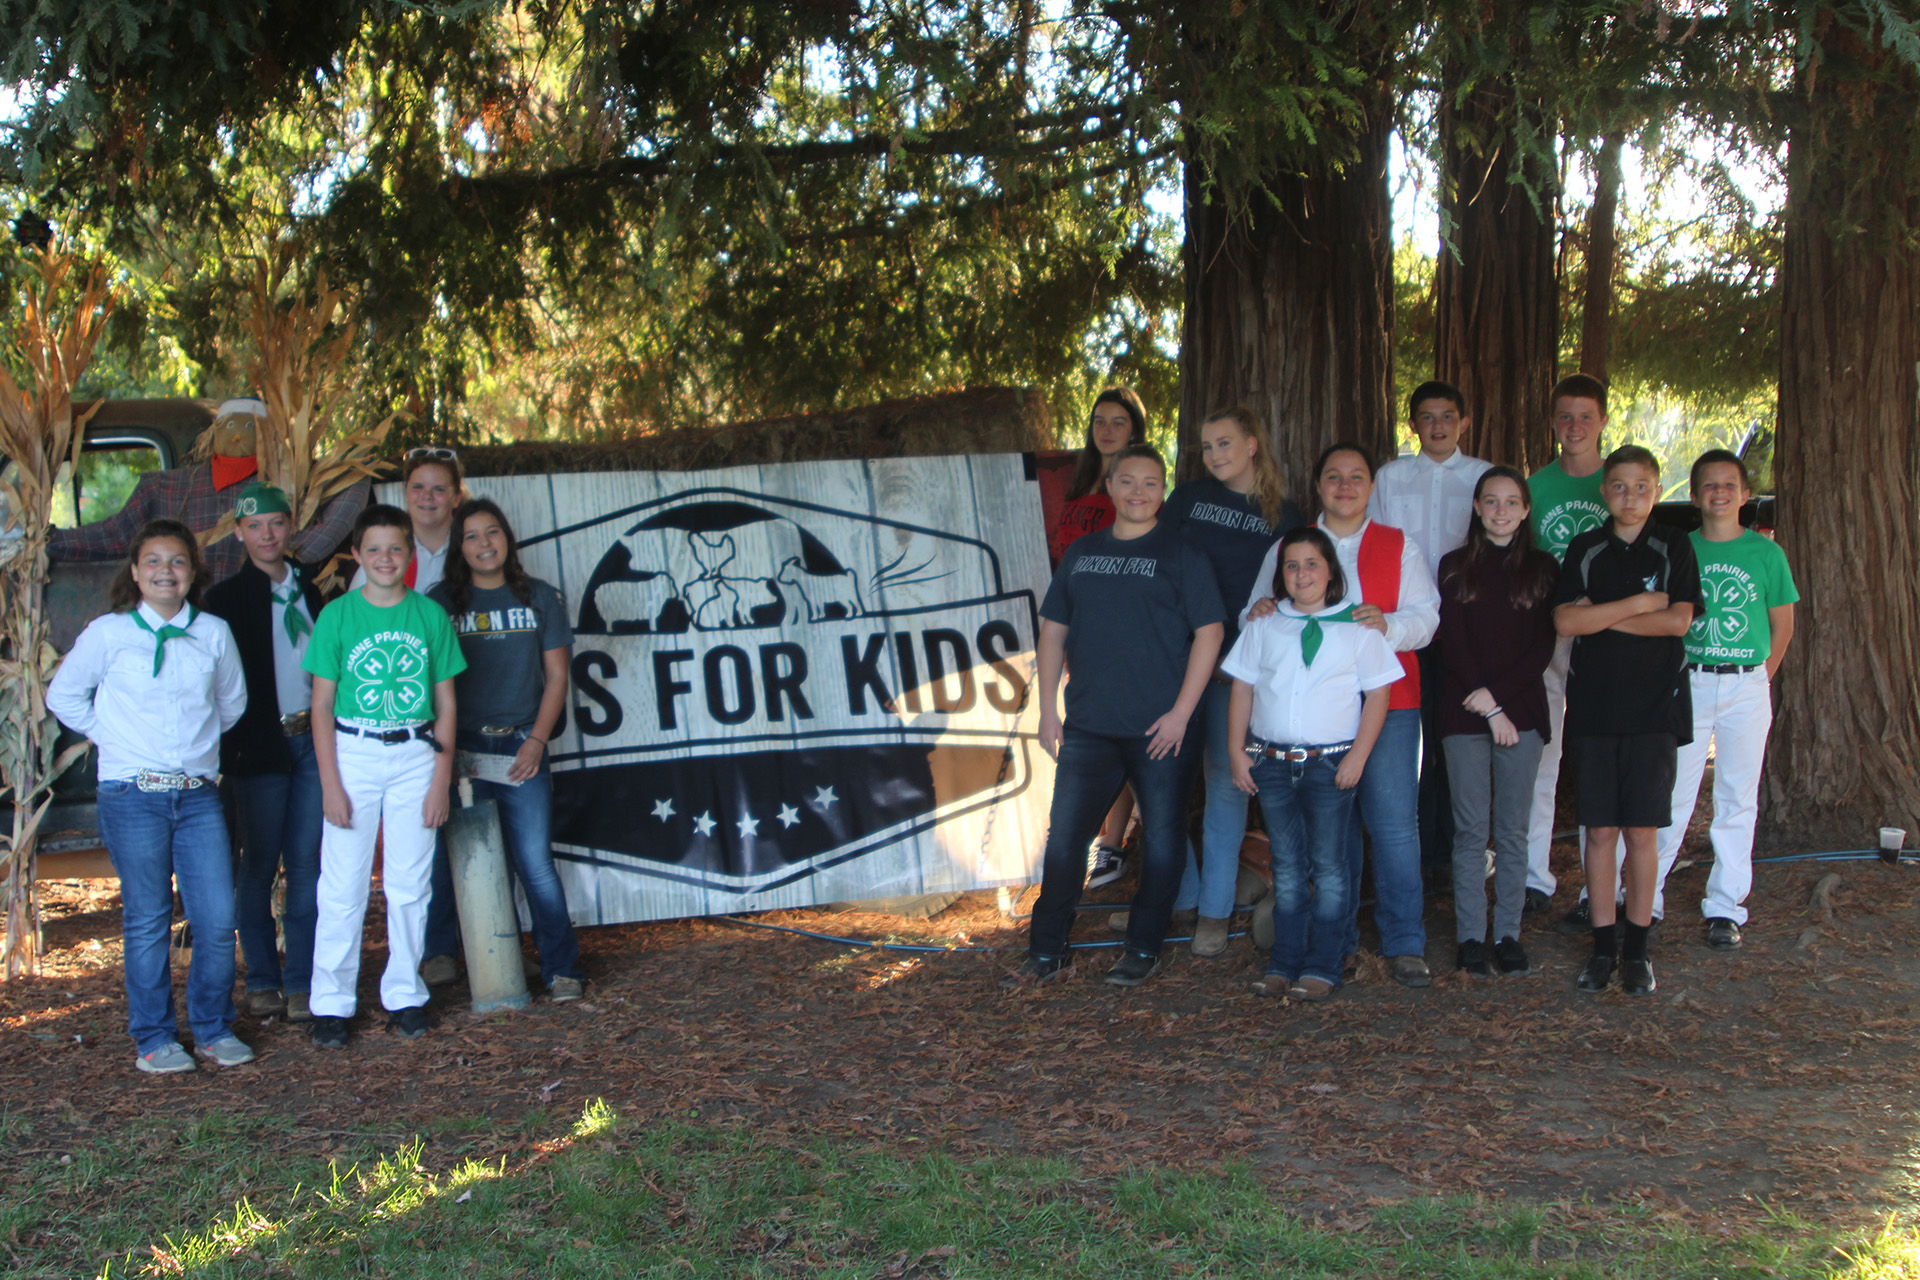 Group of volunteers standing next to bids for kids signs